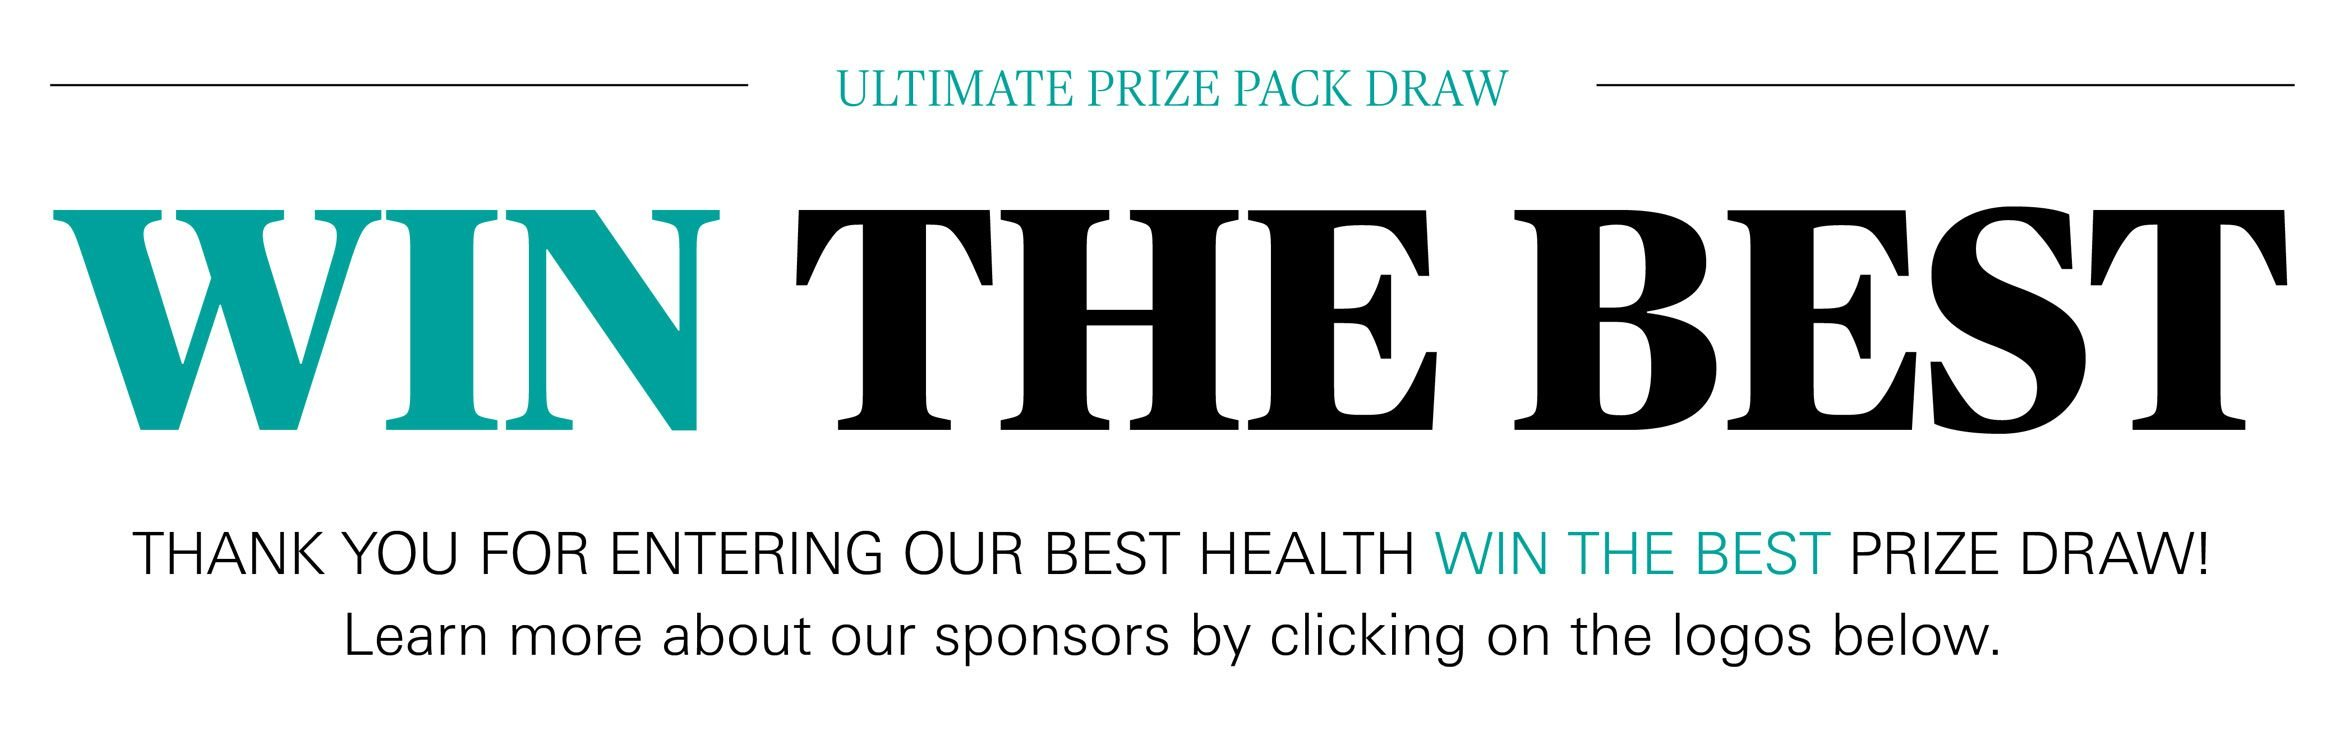 Win The Best - Thank You